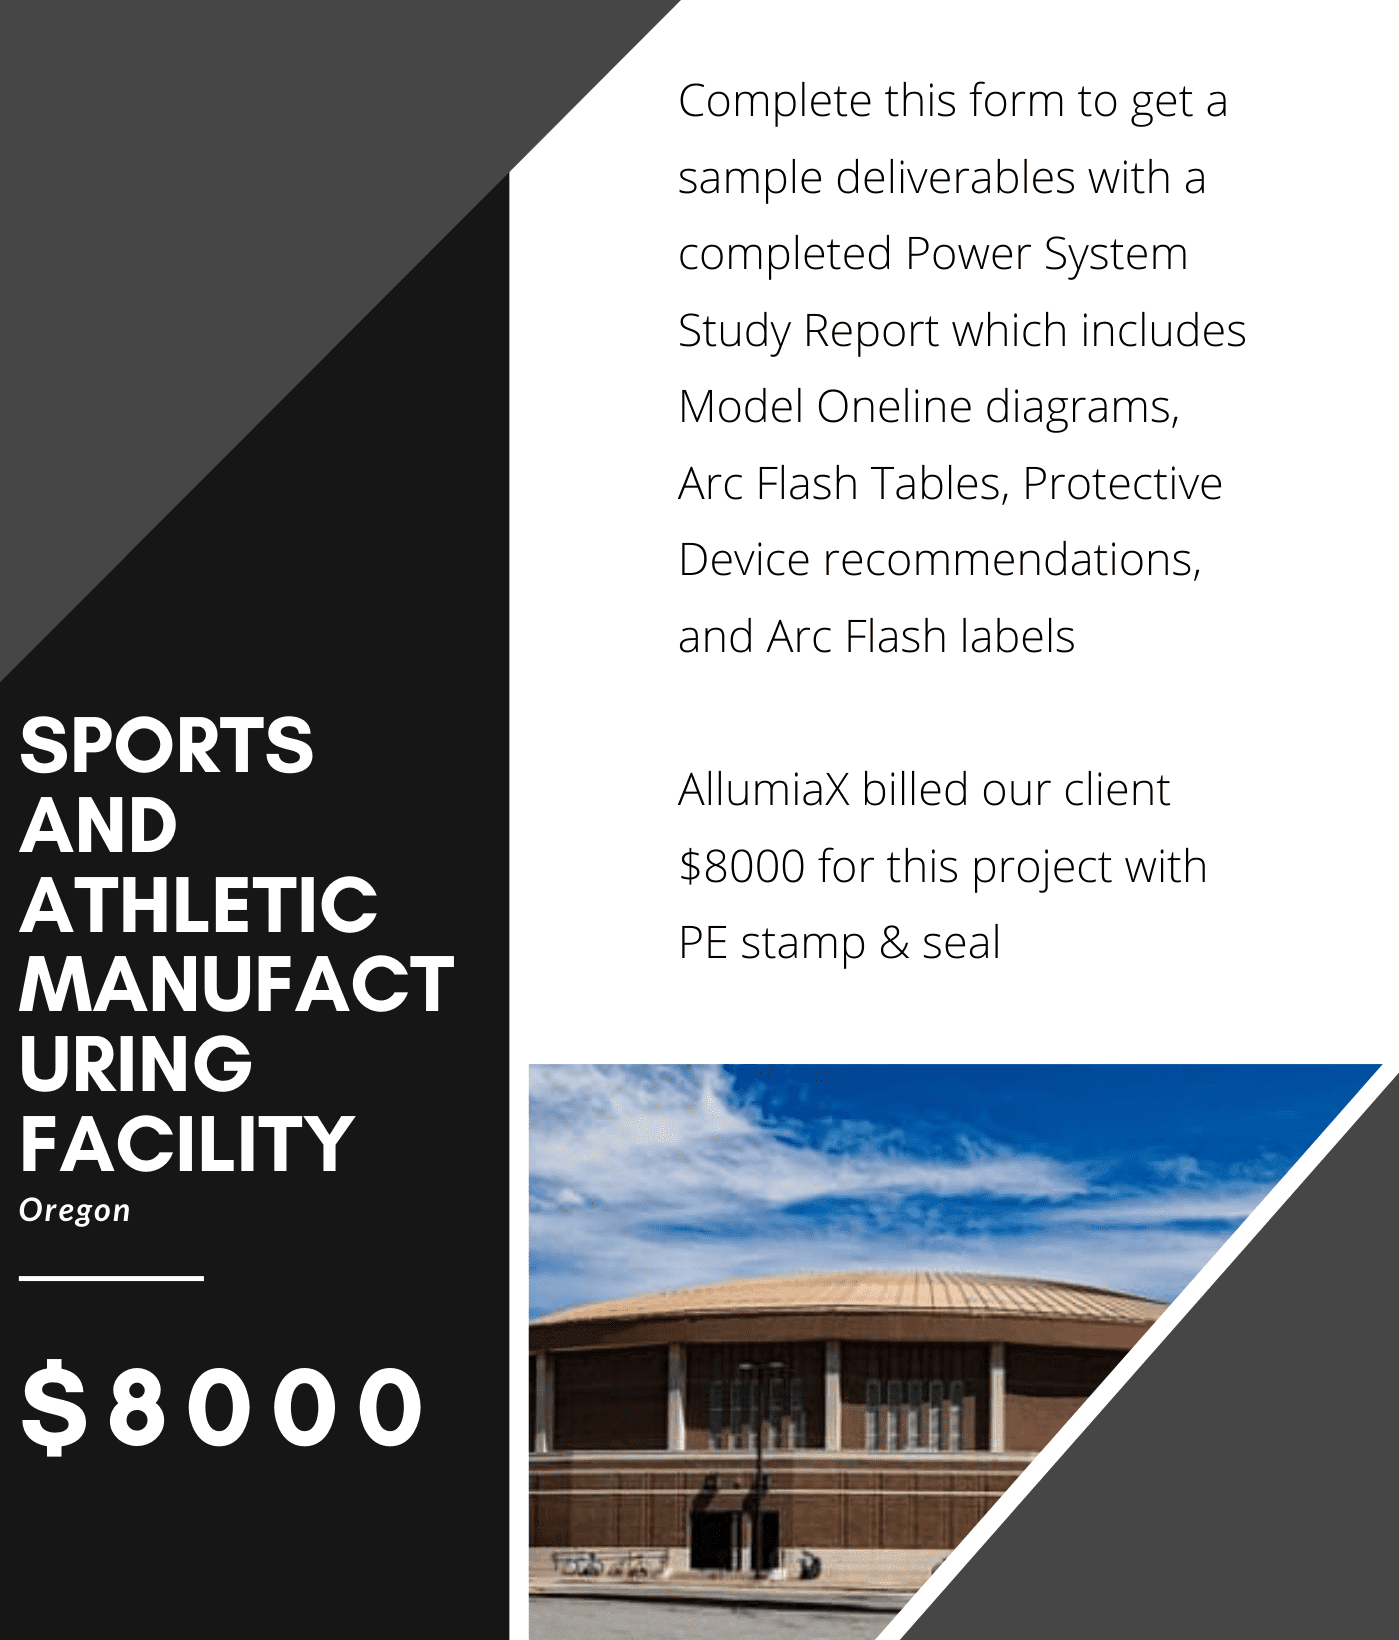 Sports and Athletic Manufacturing Facility in Oregon